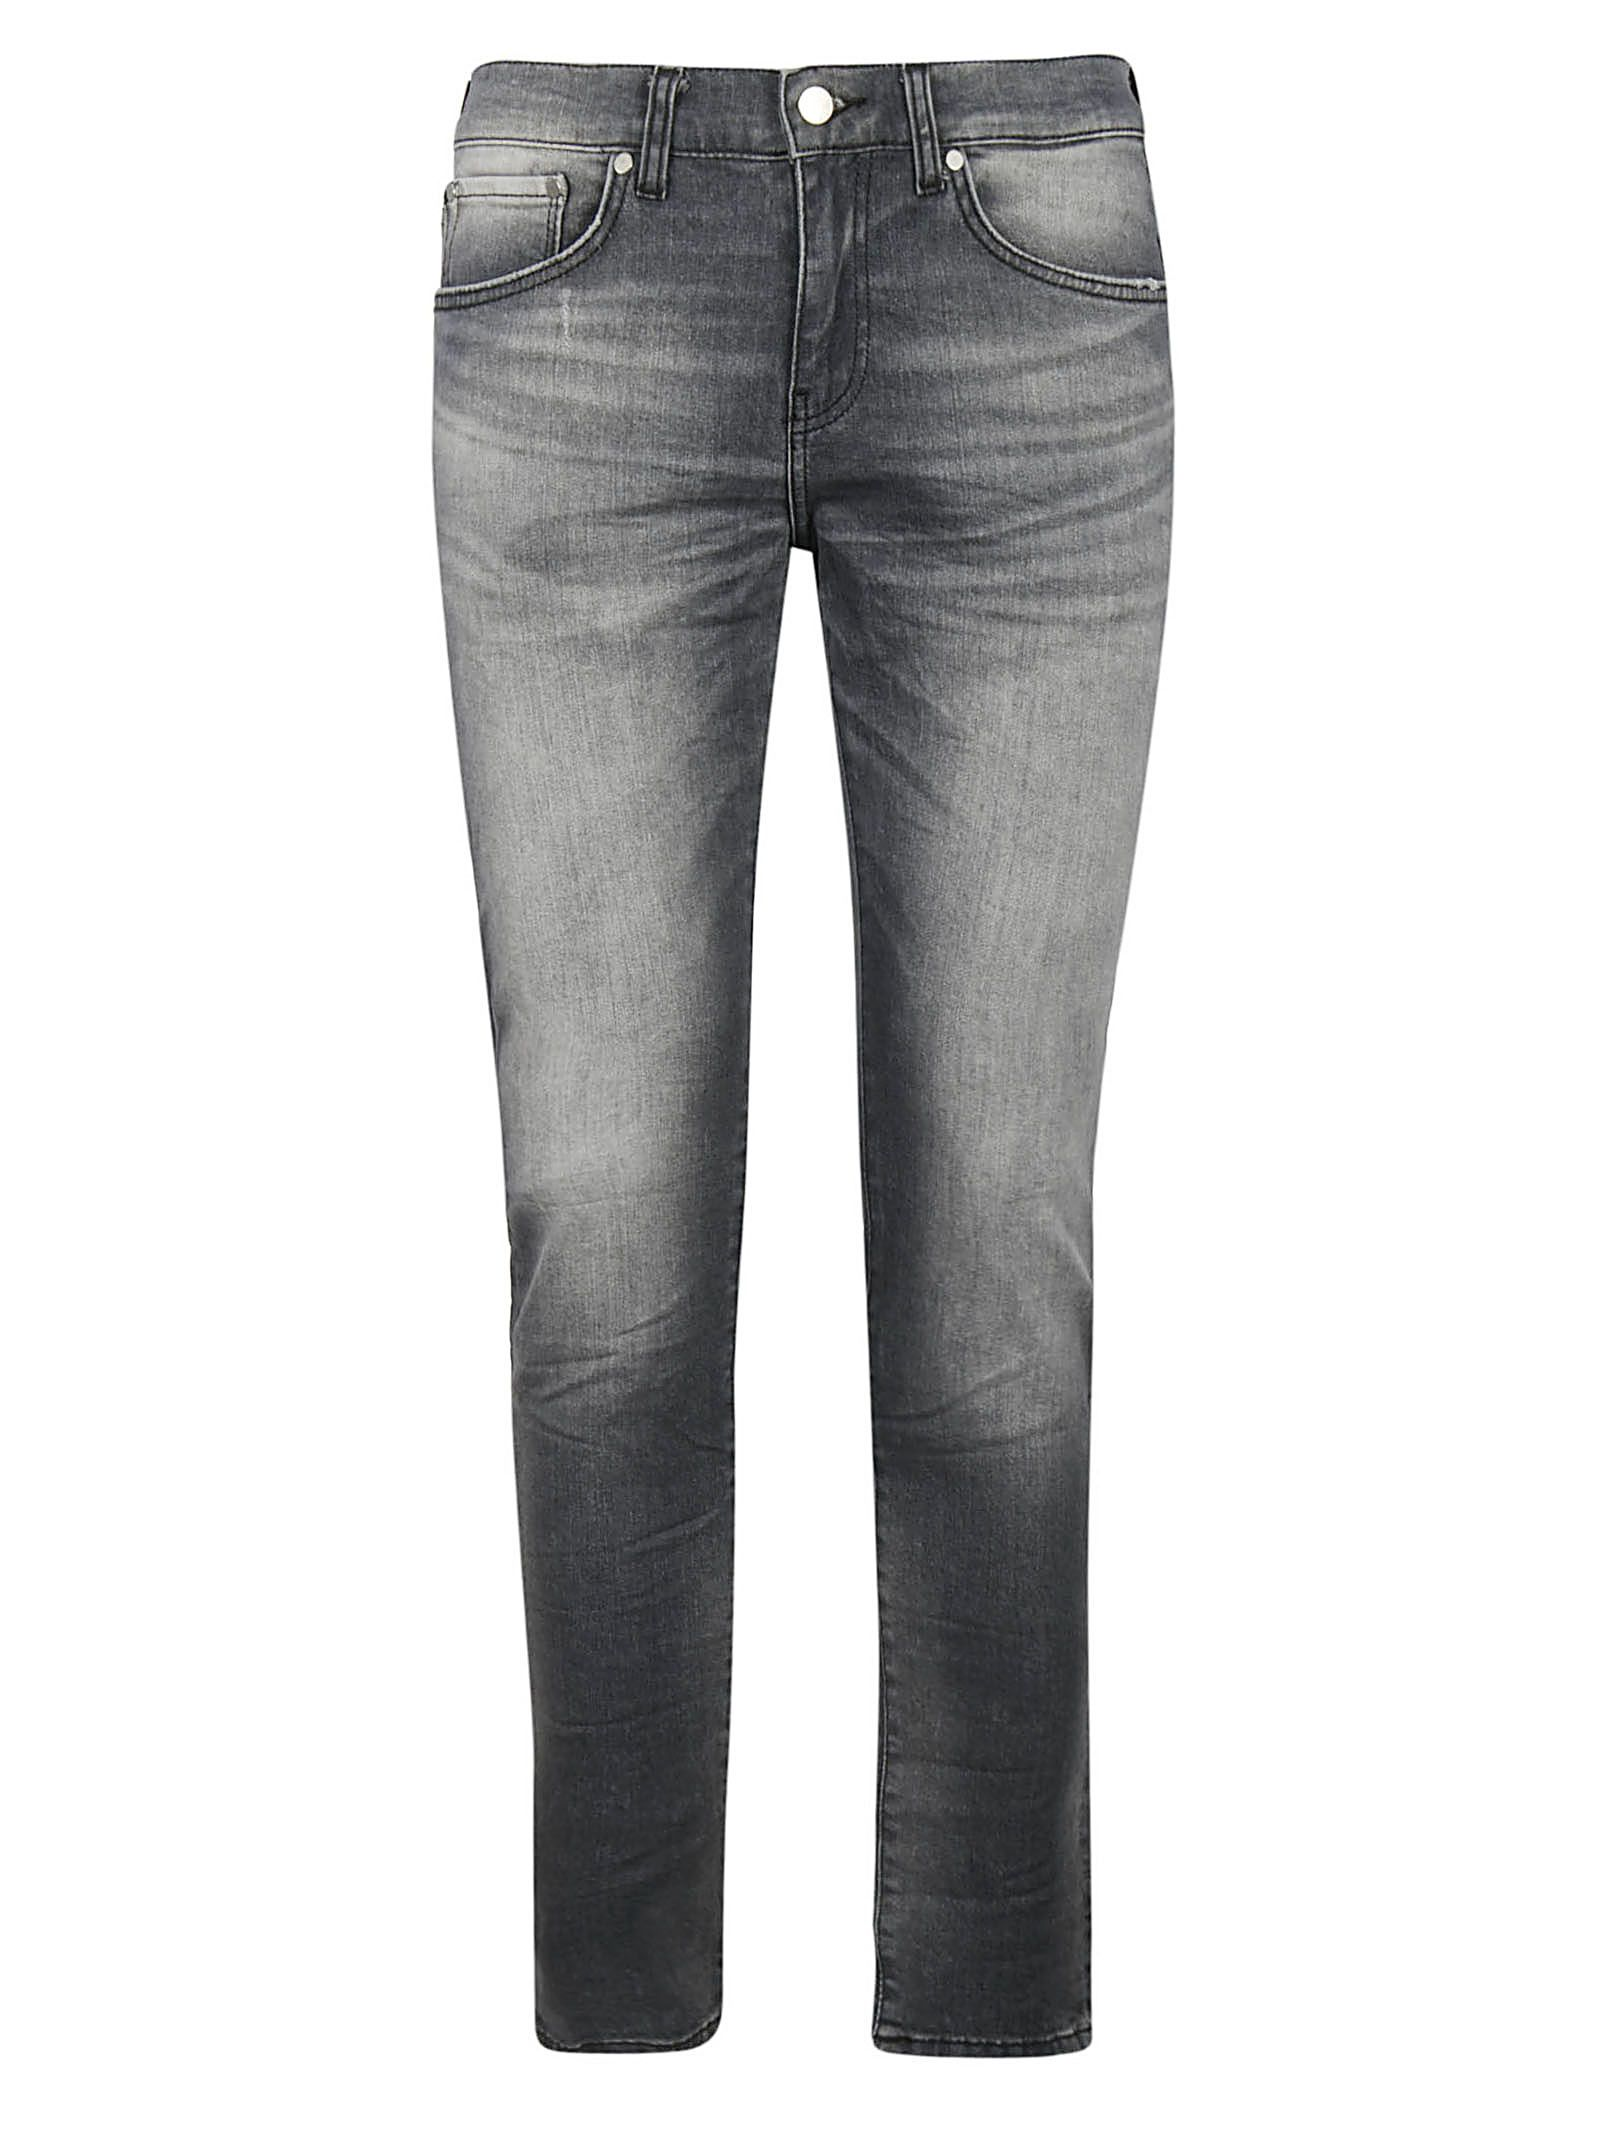 BRIAN DALES Straight Leg Jeans in 010